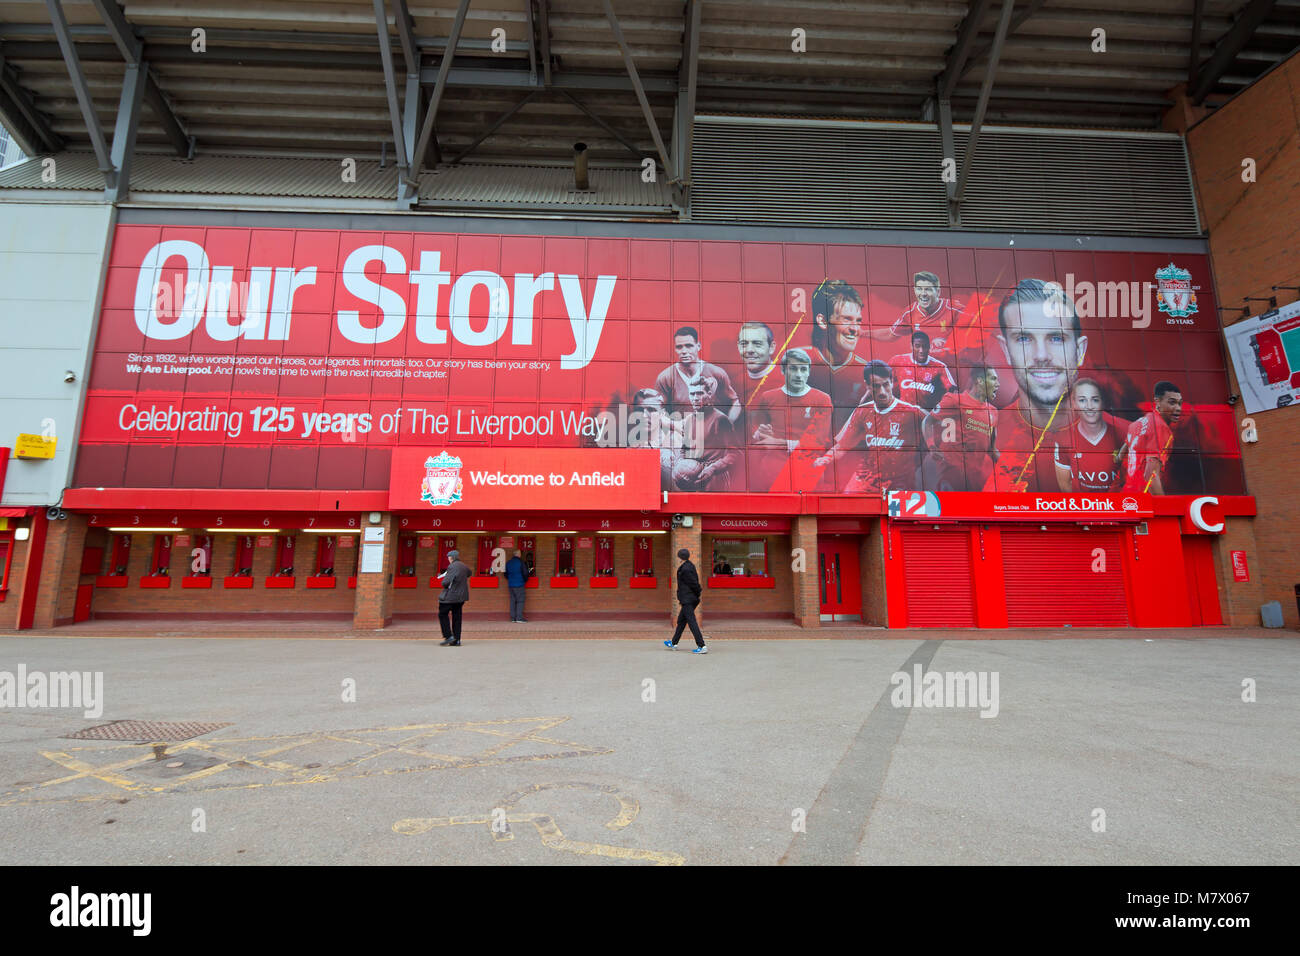 Huge mural at the Kop end of the stadium at Anfield, home of Liverpool Football Club for the 2017/2018 season. - Stock Image